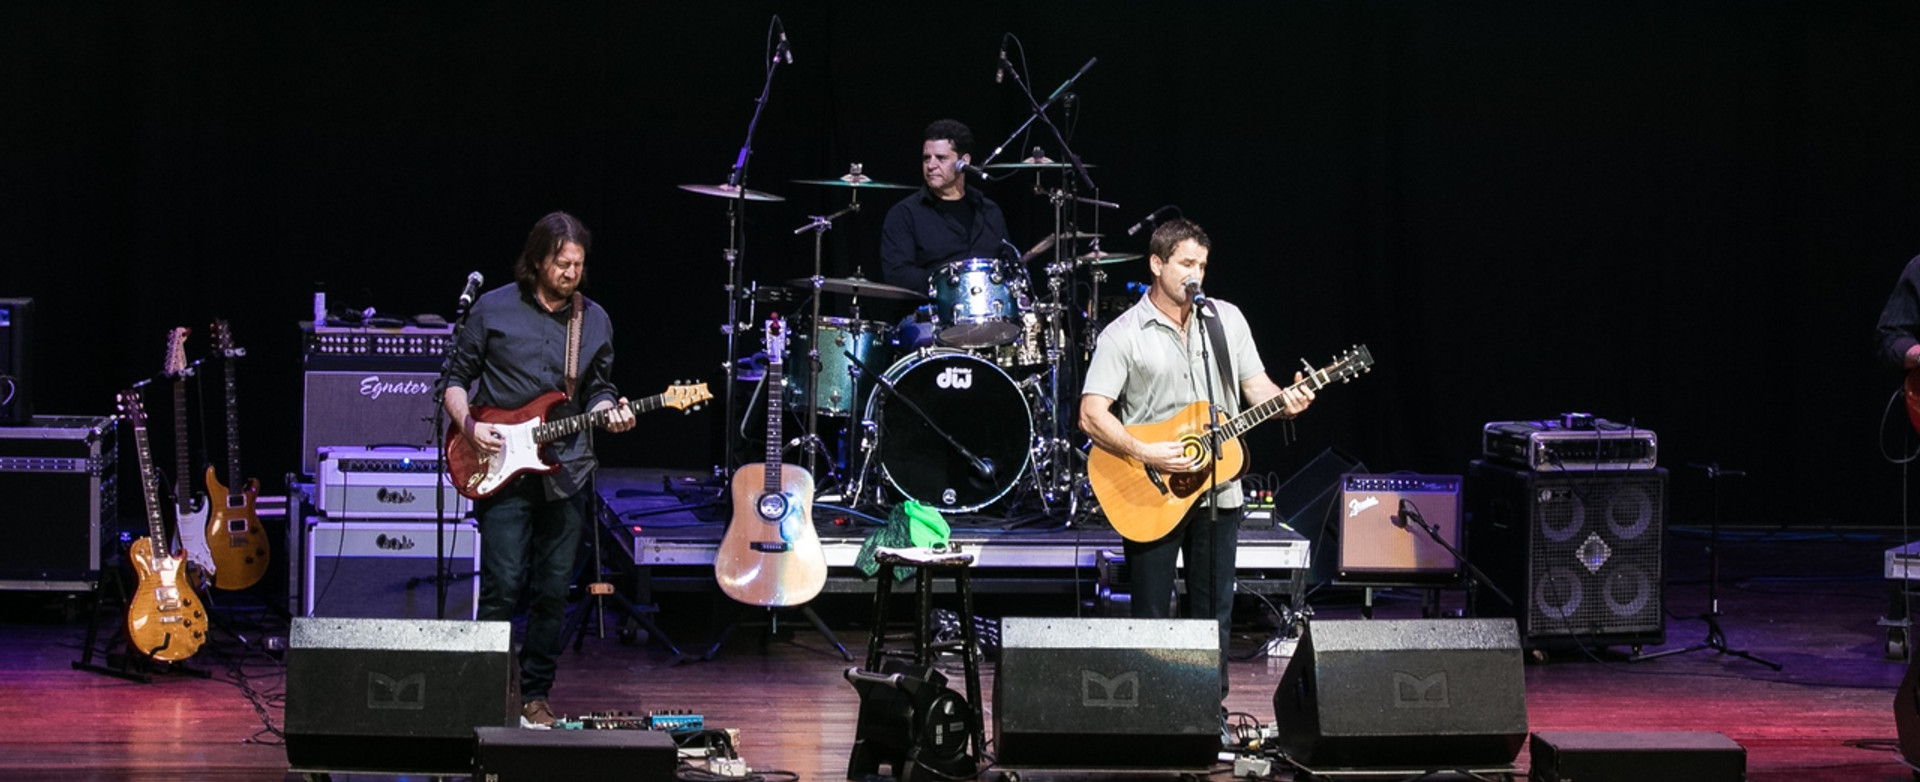 Doug Segree Band - Merriweather